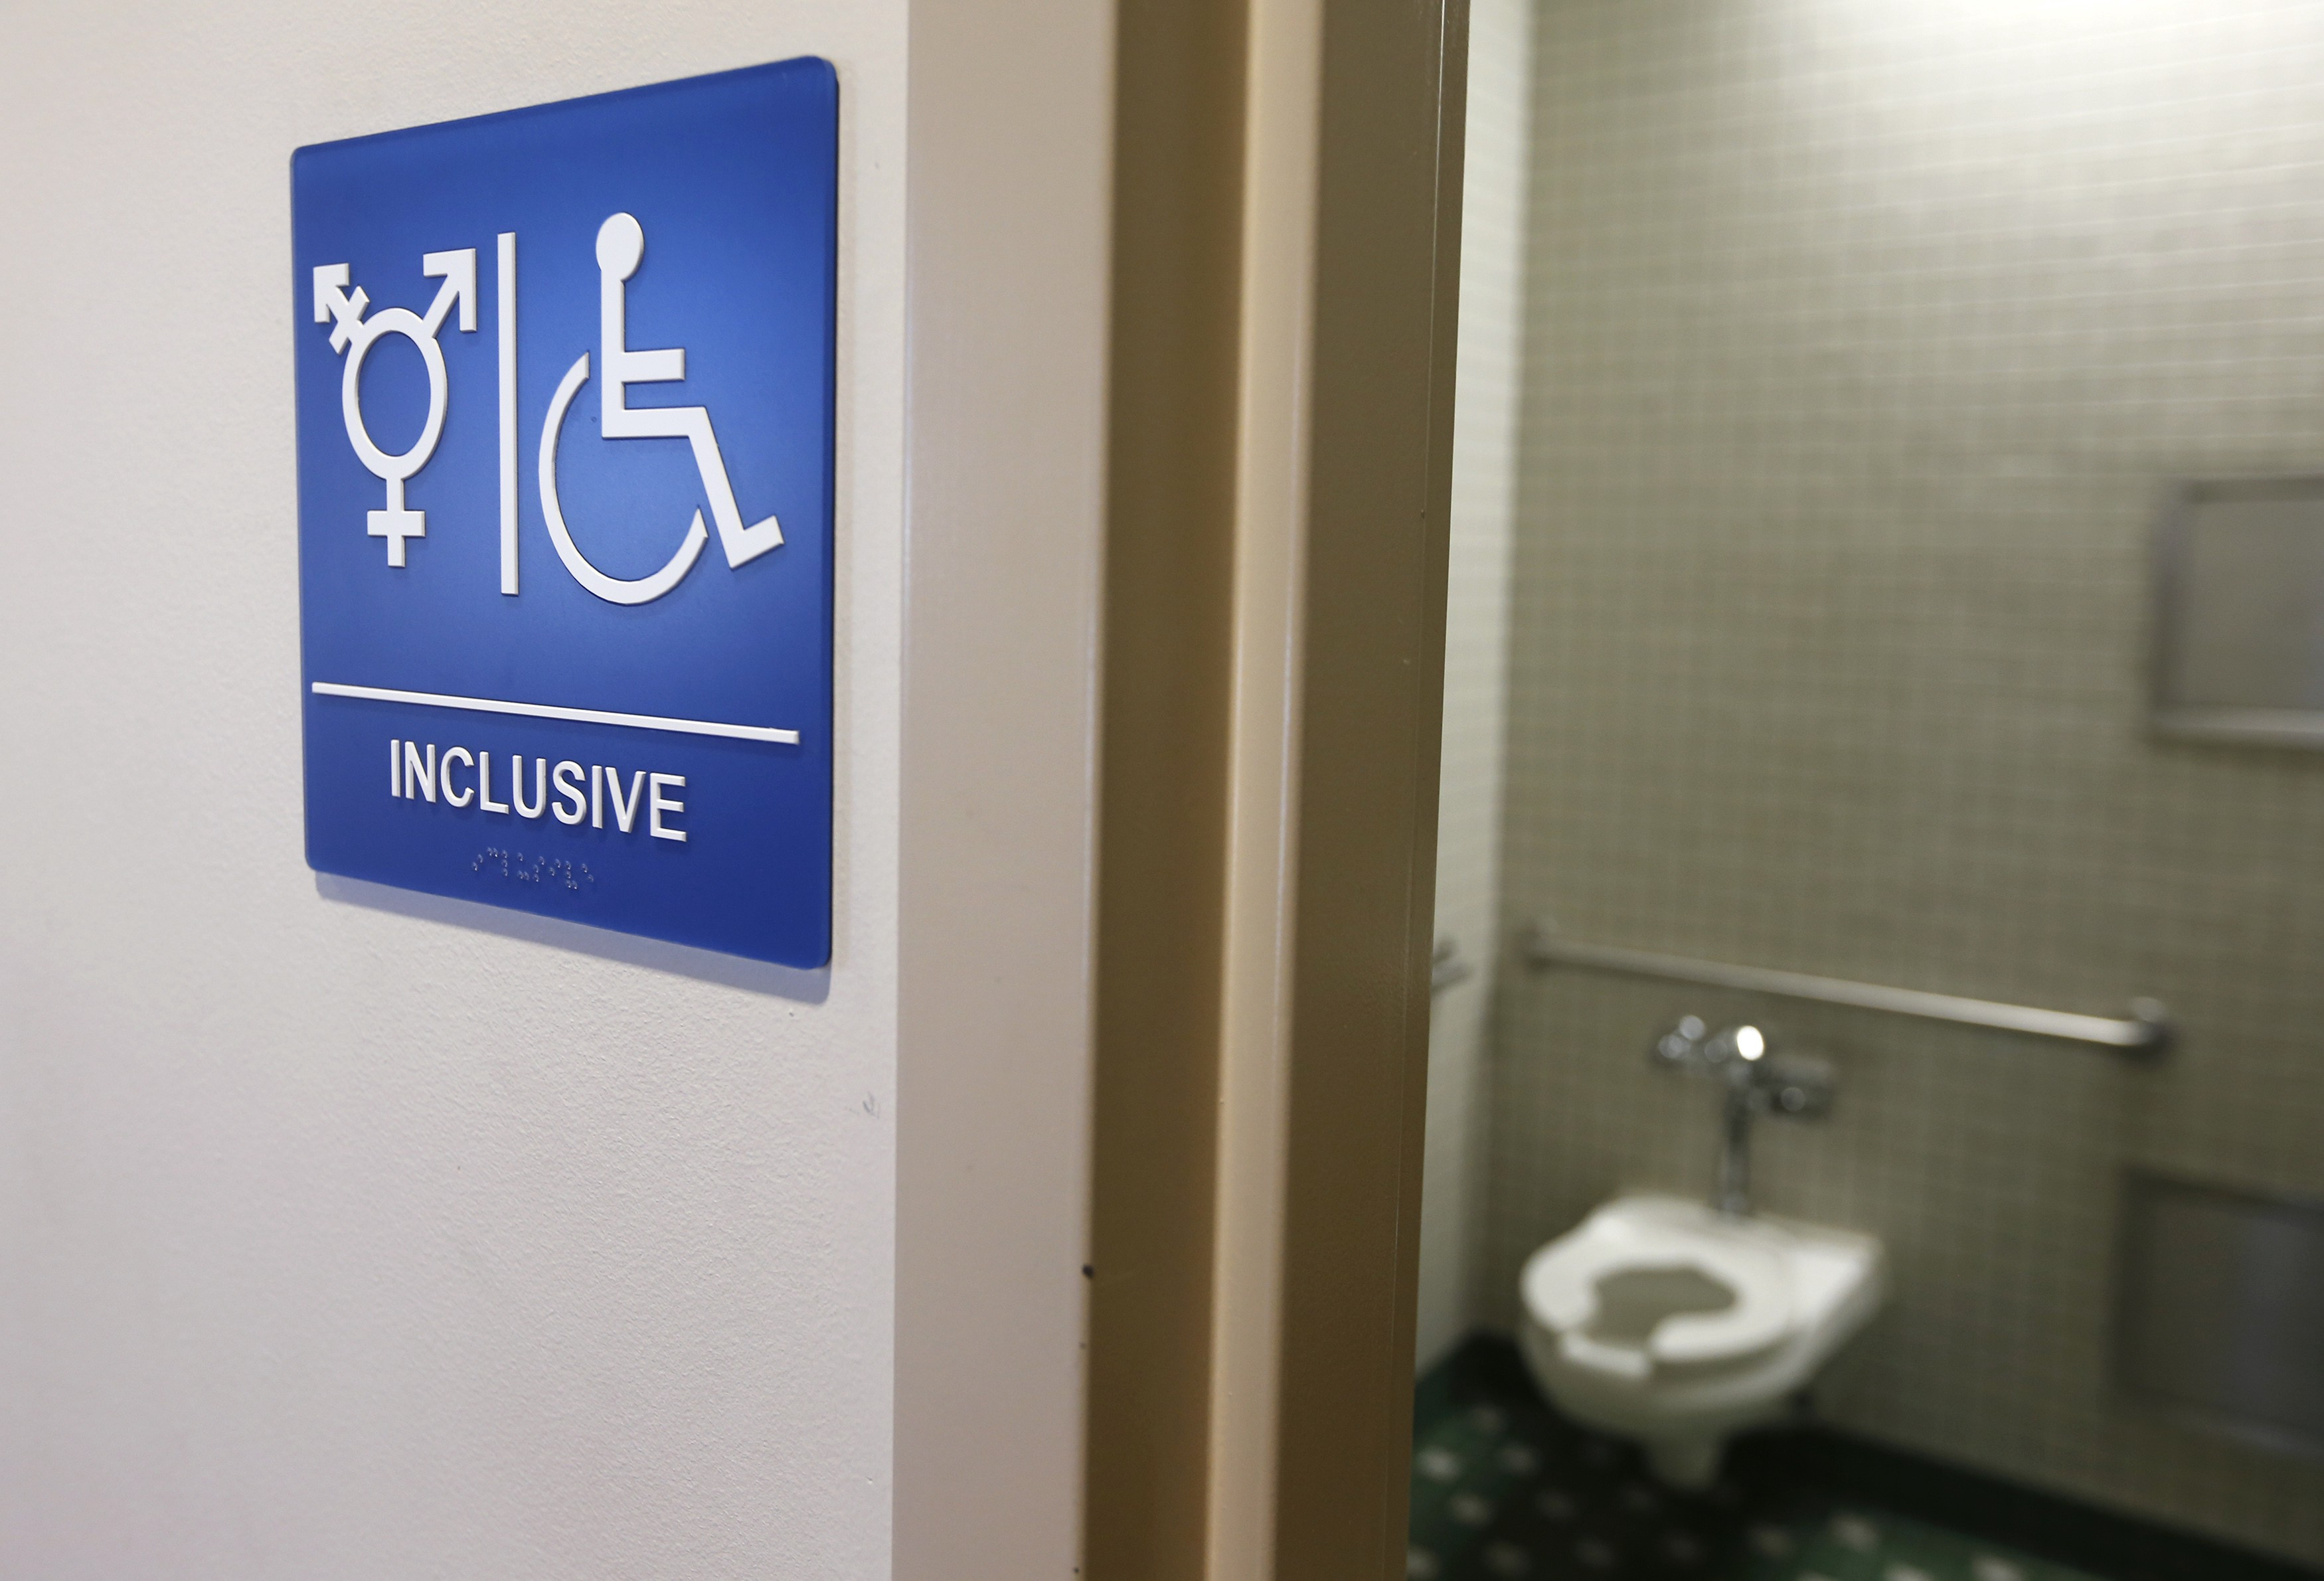 The Design Of Segregated Public Bathrooms Victorian Jim Crow Trans And Disability By Alex Chen Medium